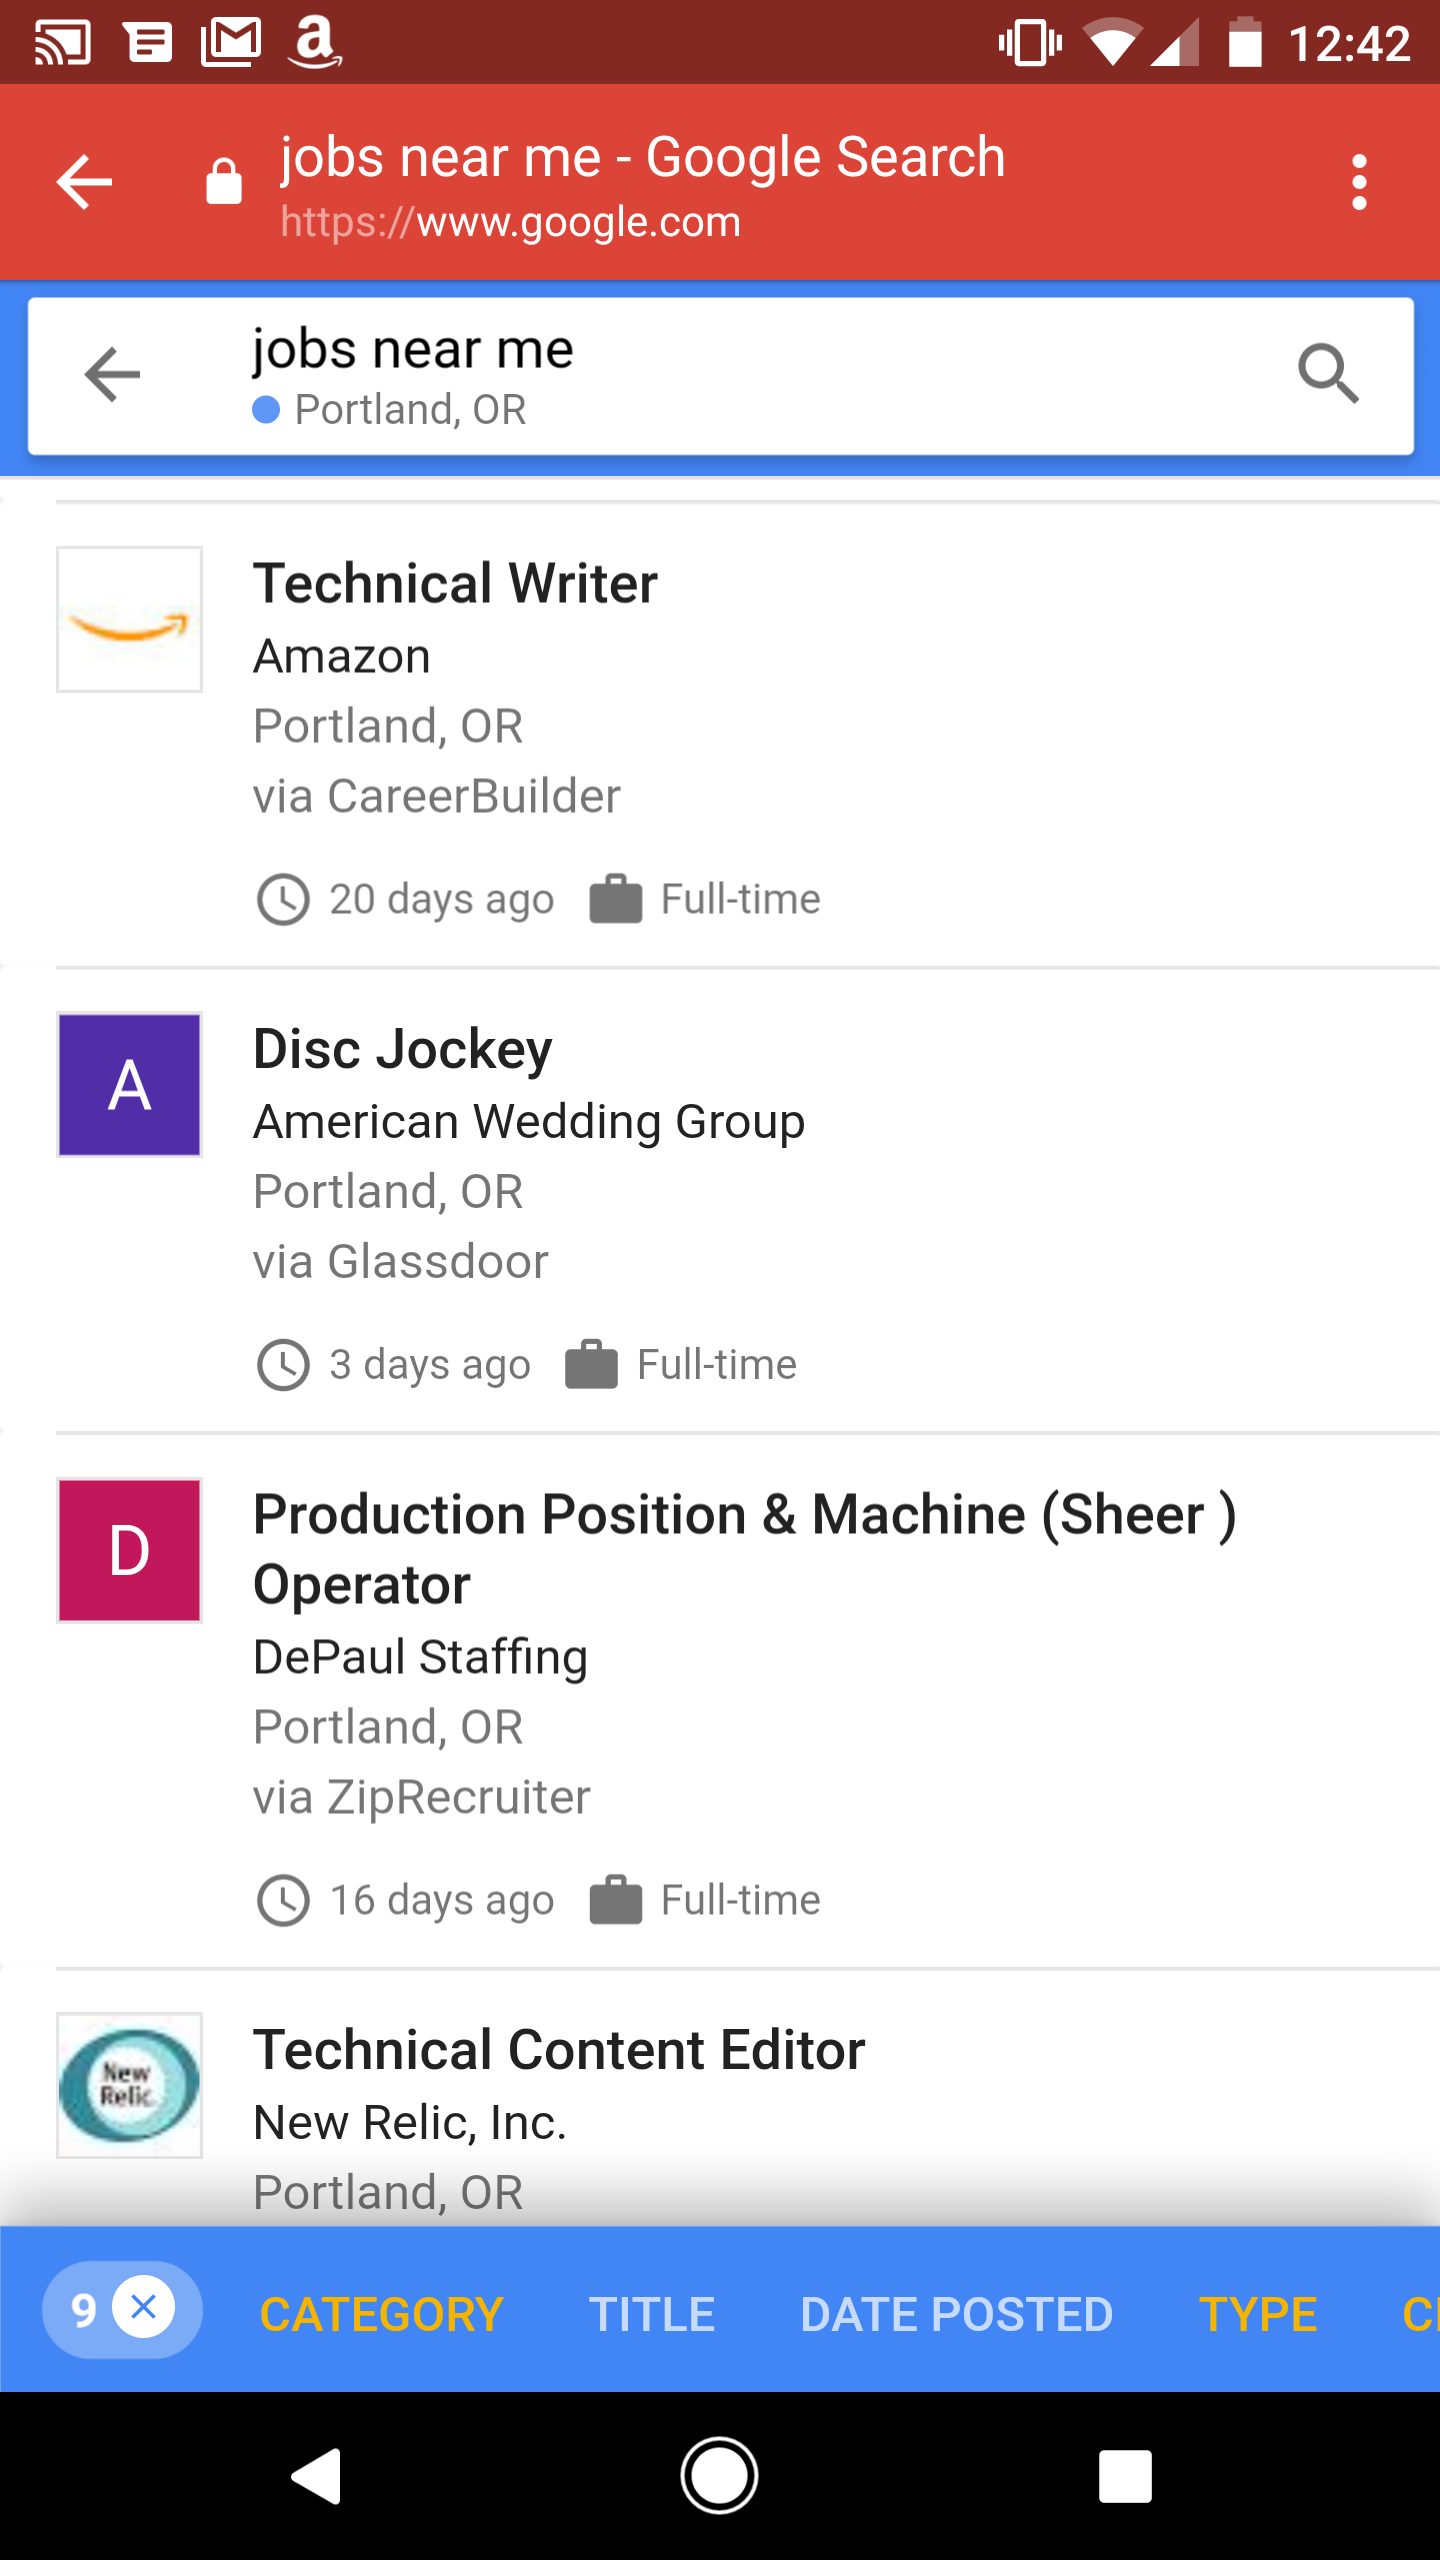 With This New Feature Is Now Available In English On Desktop And Mobile All You Have To Type In Is A Query Like Jobs Near Me Writing Jobs Or